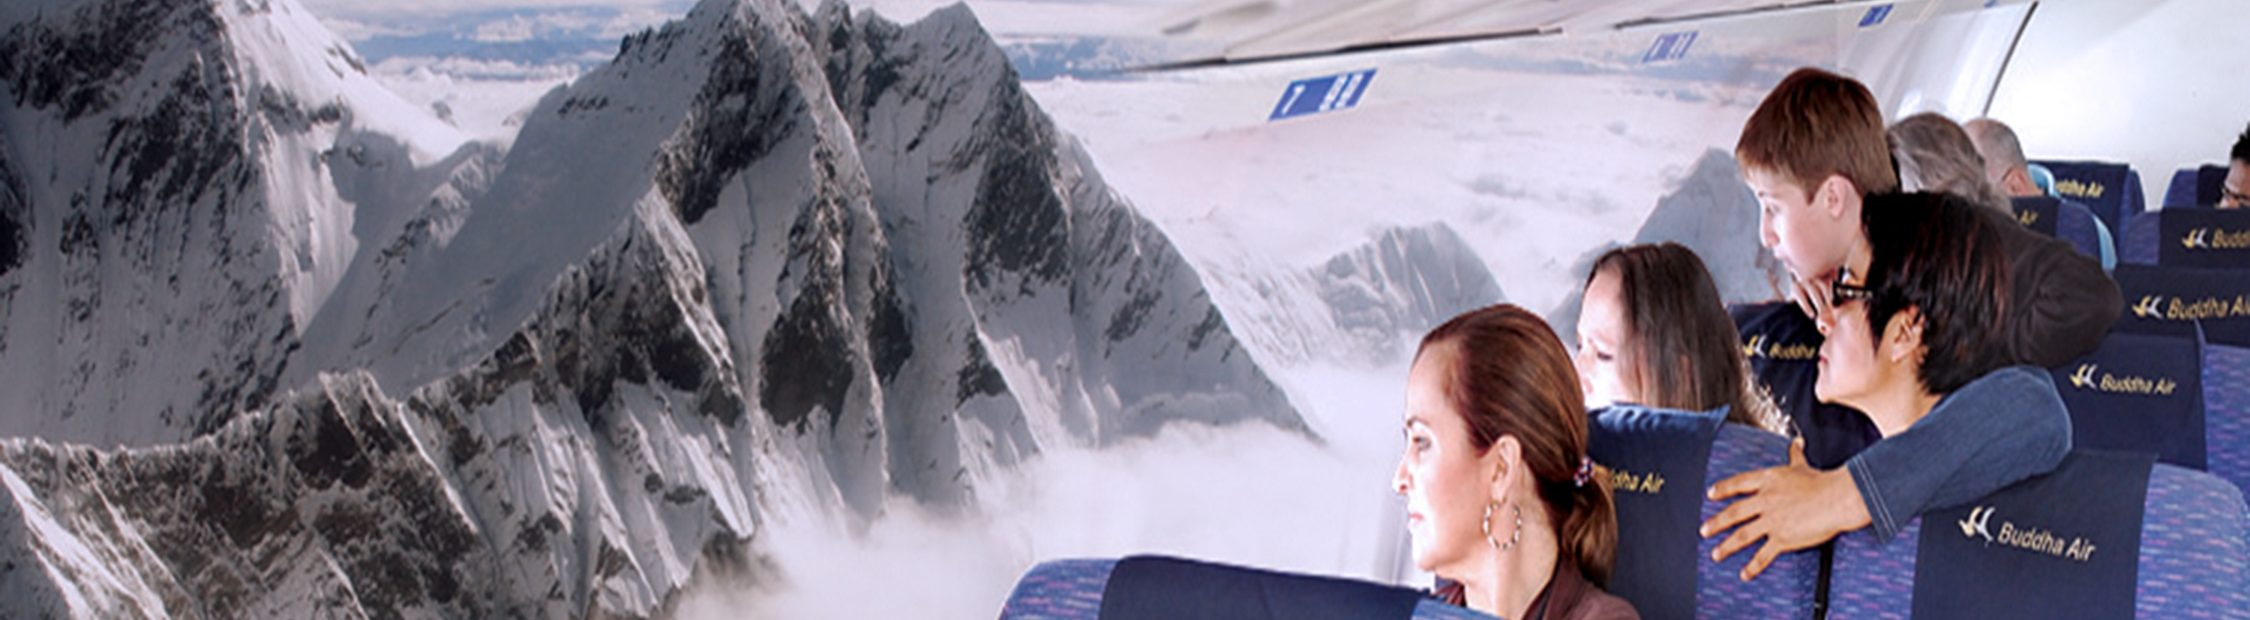 Mt. Everest Experience Overfly